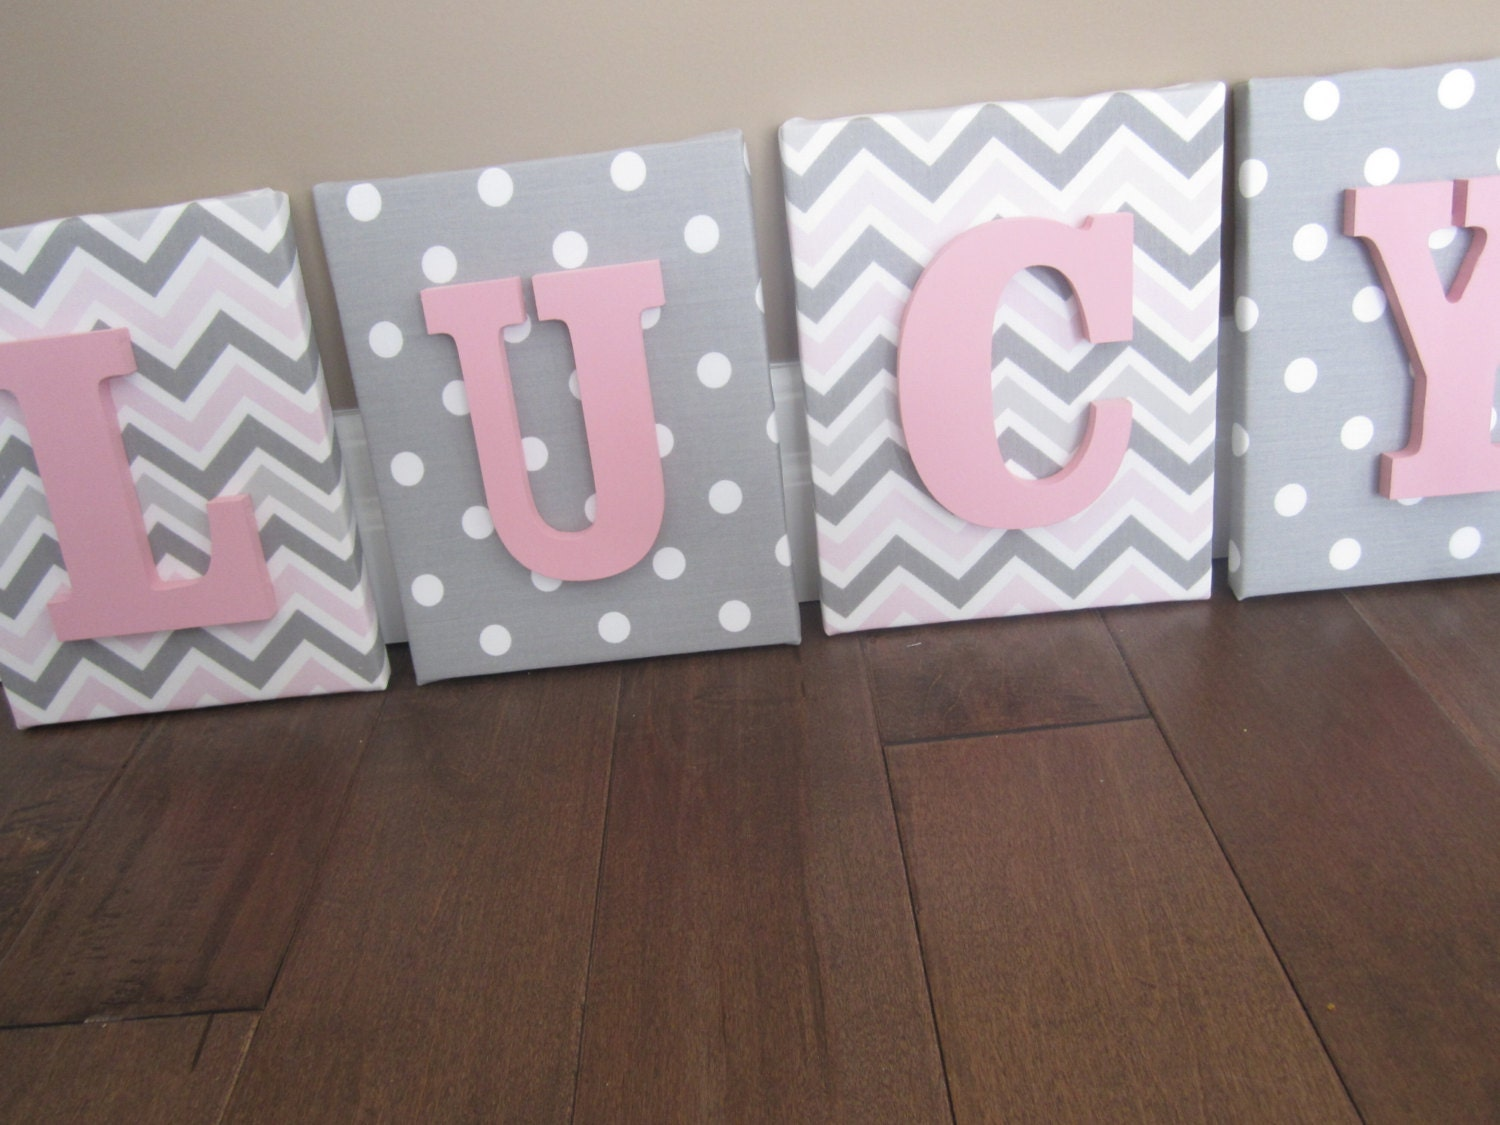 wall canvas letters nursery decor nursery letters by nurseryshoppe. Black Bedroom Furniture Sets. Home Design Ideas